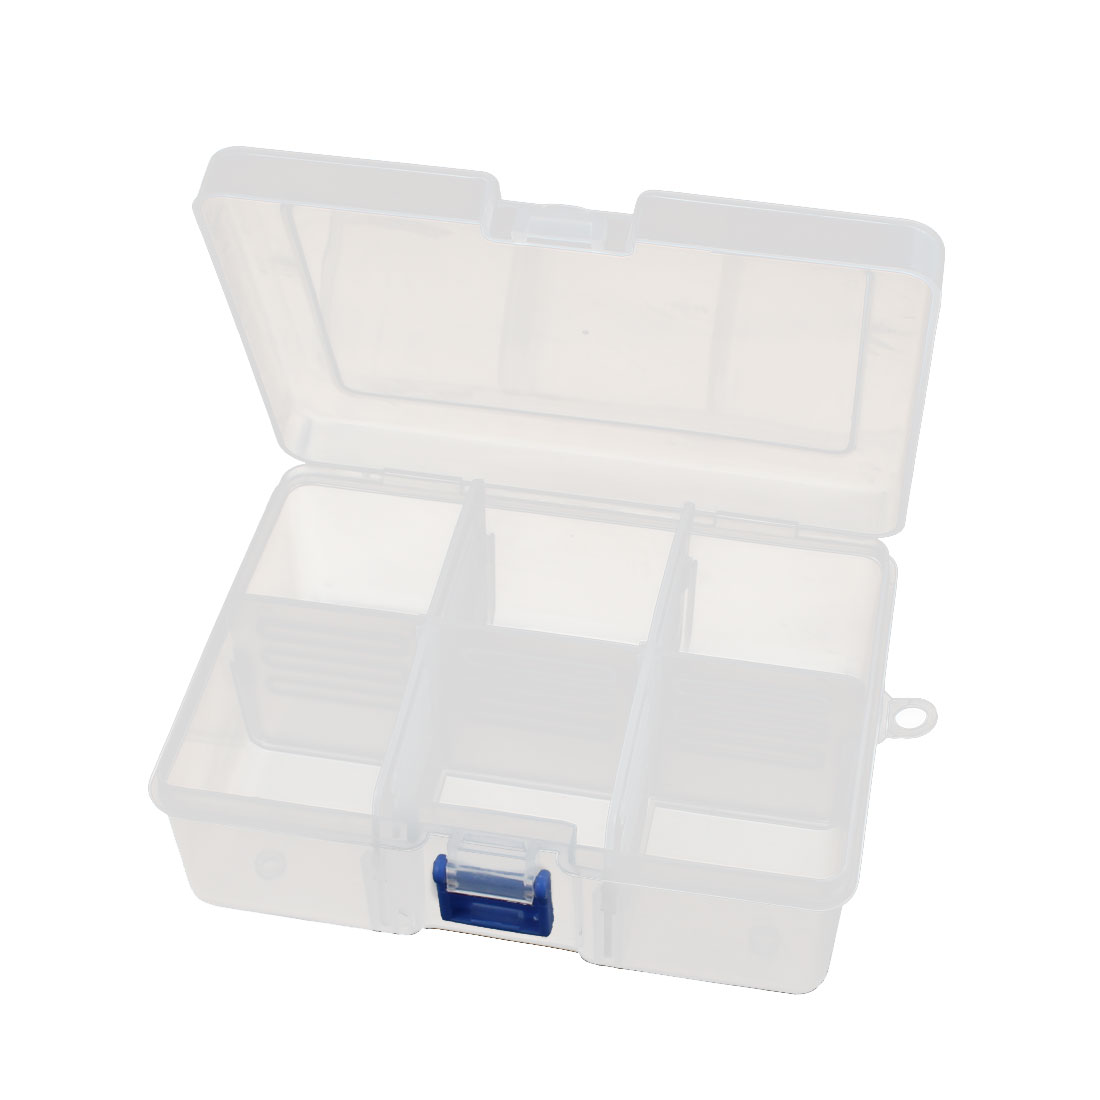 Clear White 6 Slots Waterproof Components Storage Box Case 167mm x 126mm x 62mm